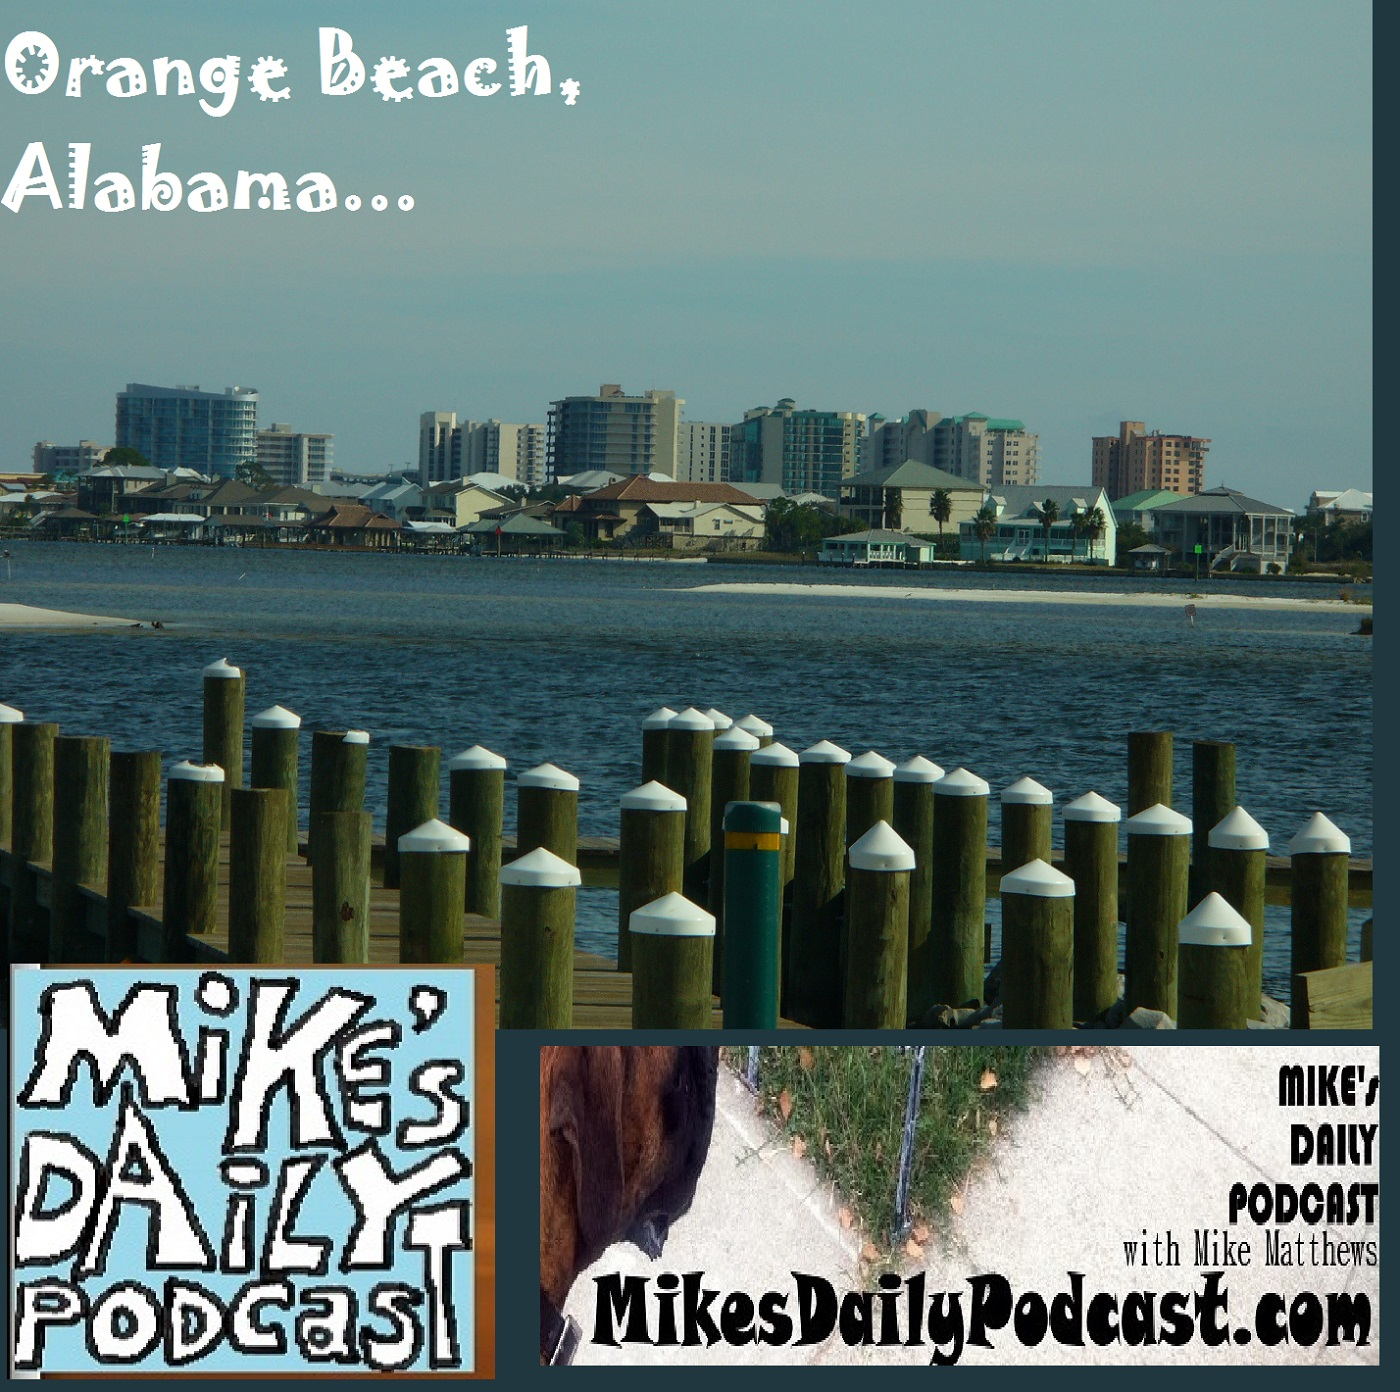 mikes-daily-podcast-1209-orange-beach-alabama